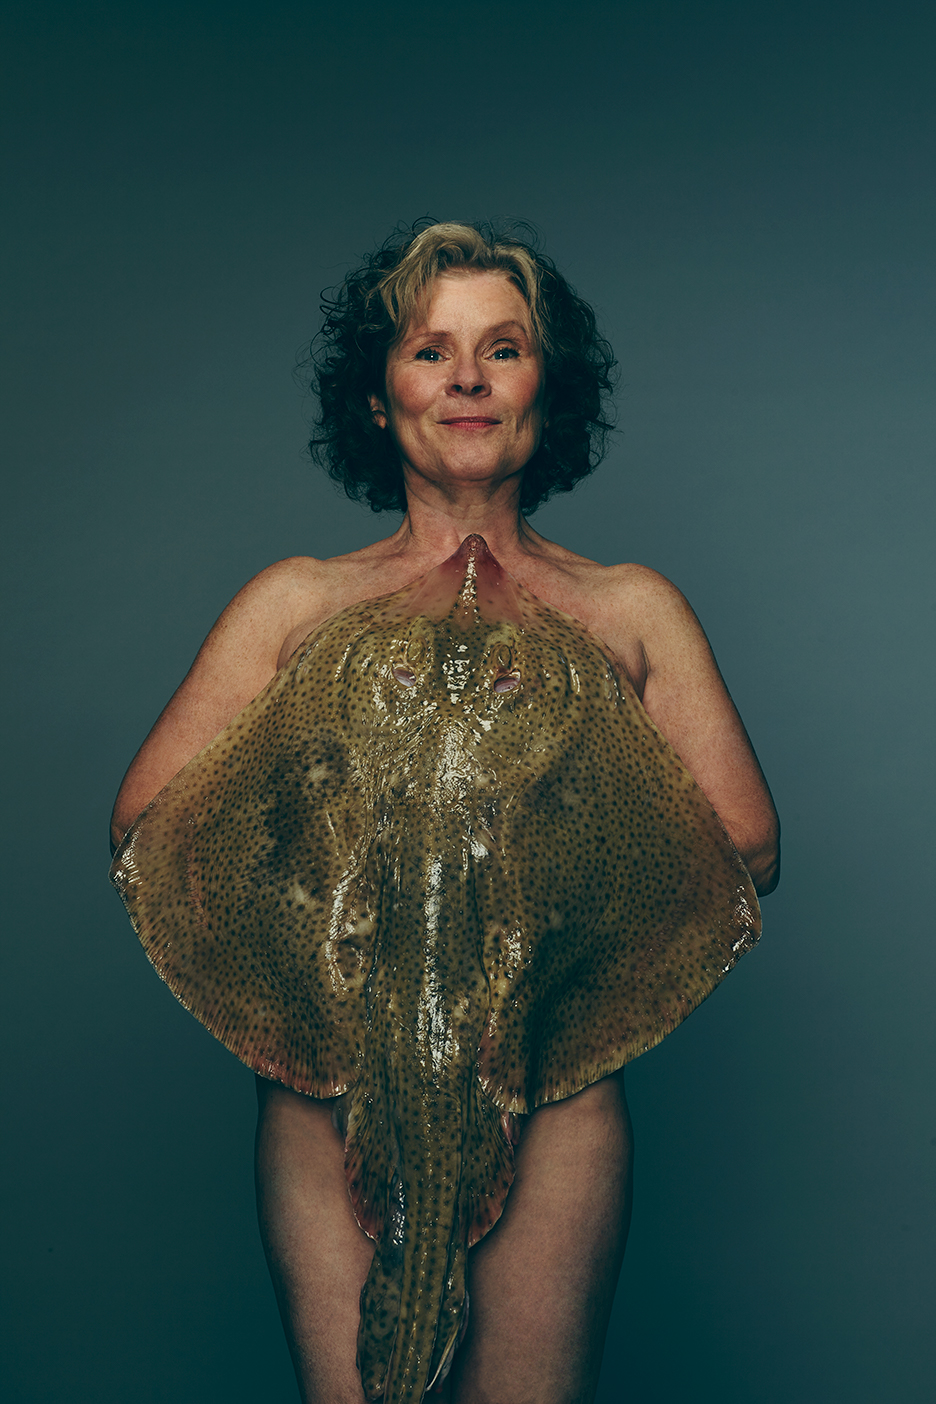 Amelia Fox Naked celebrities pose naked with fish for fishlove campaign to